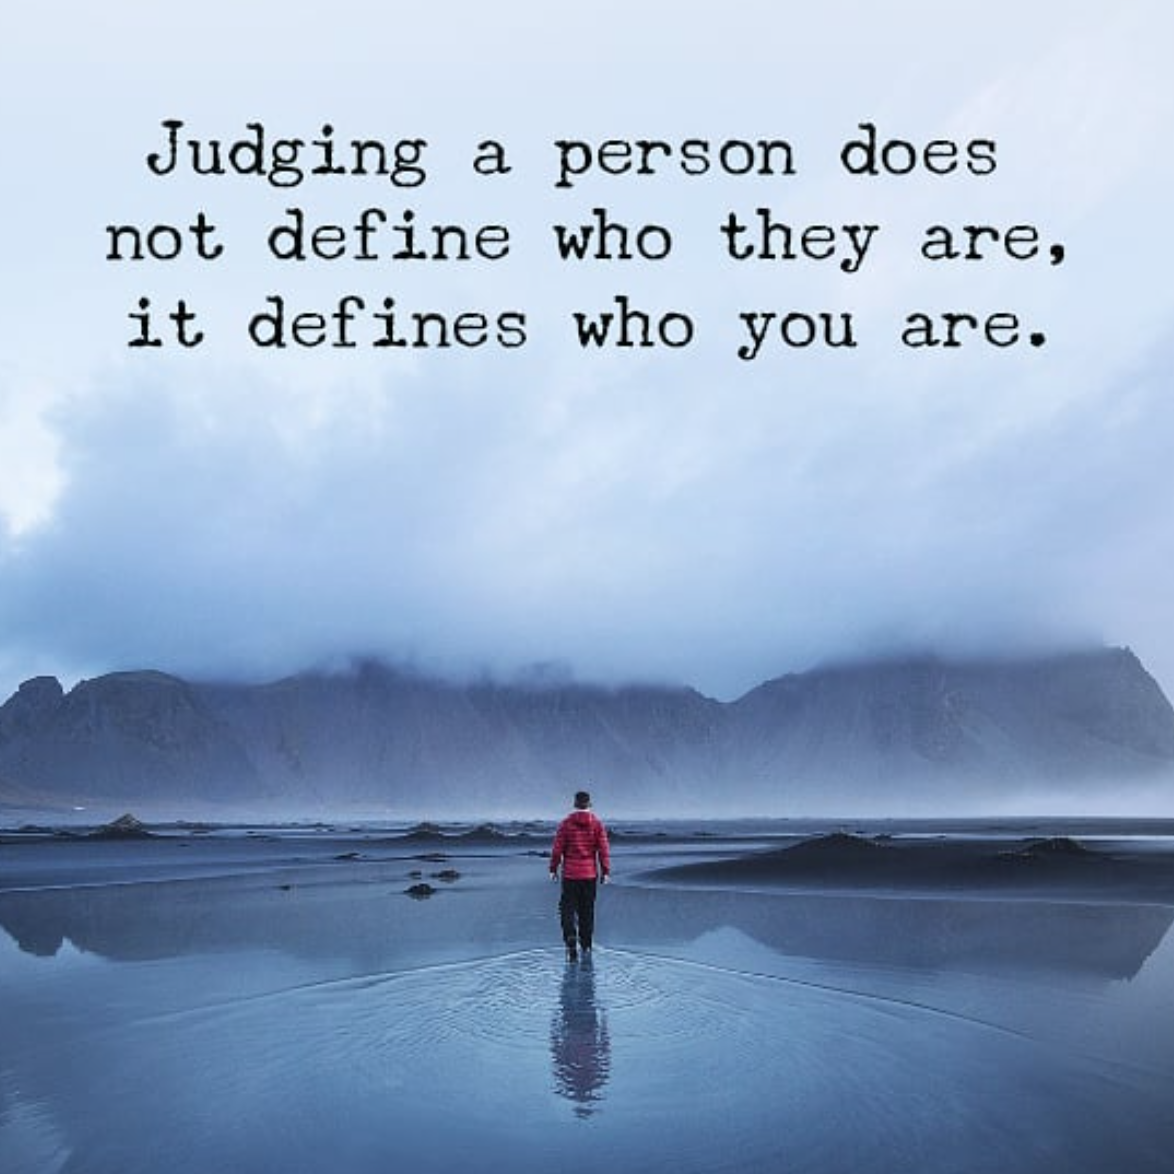 [Image] Judging a person does not define who they are, it defines who you are.